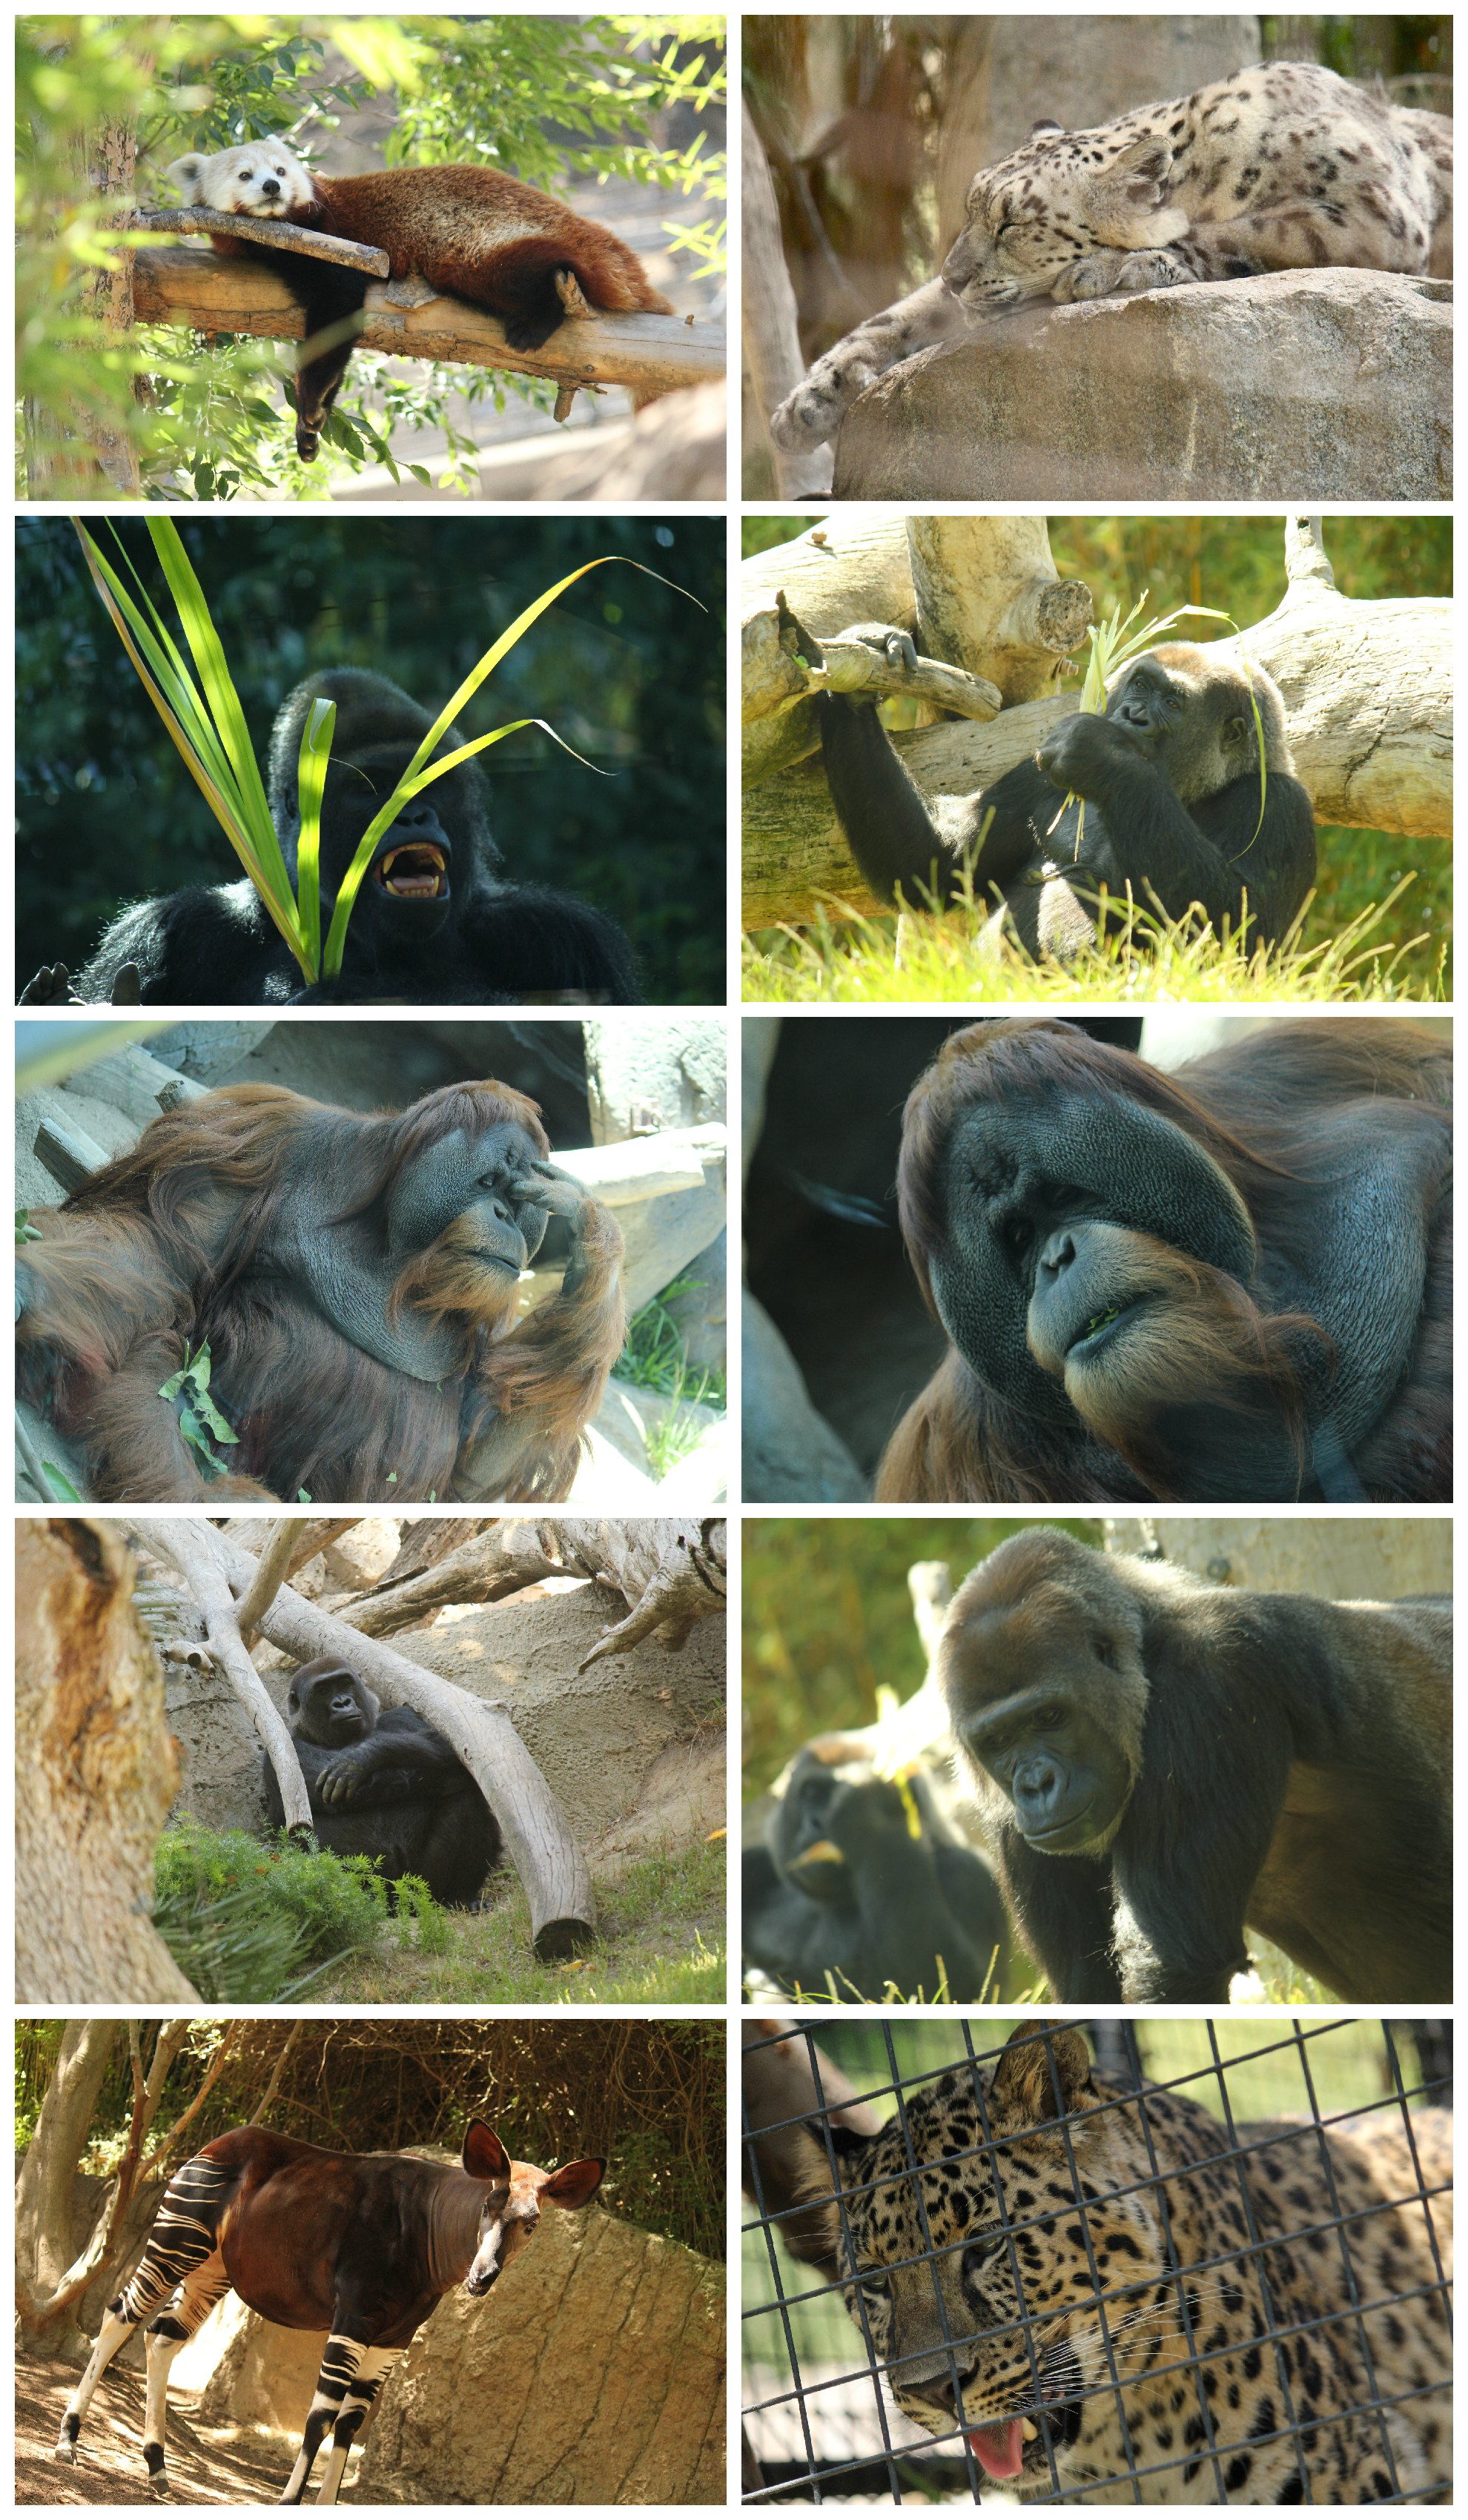 australian outback at the san diego zoo travel tuesday